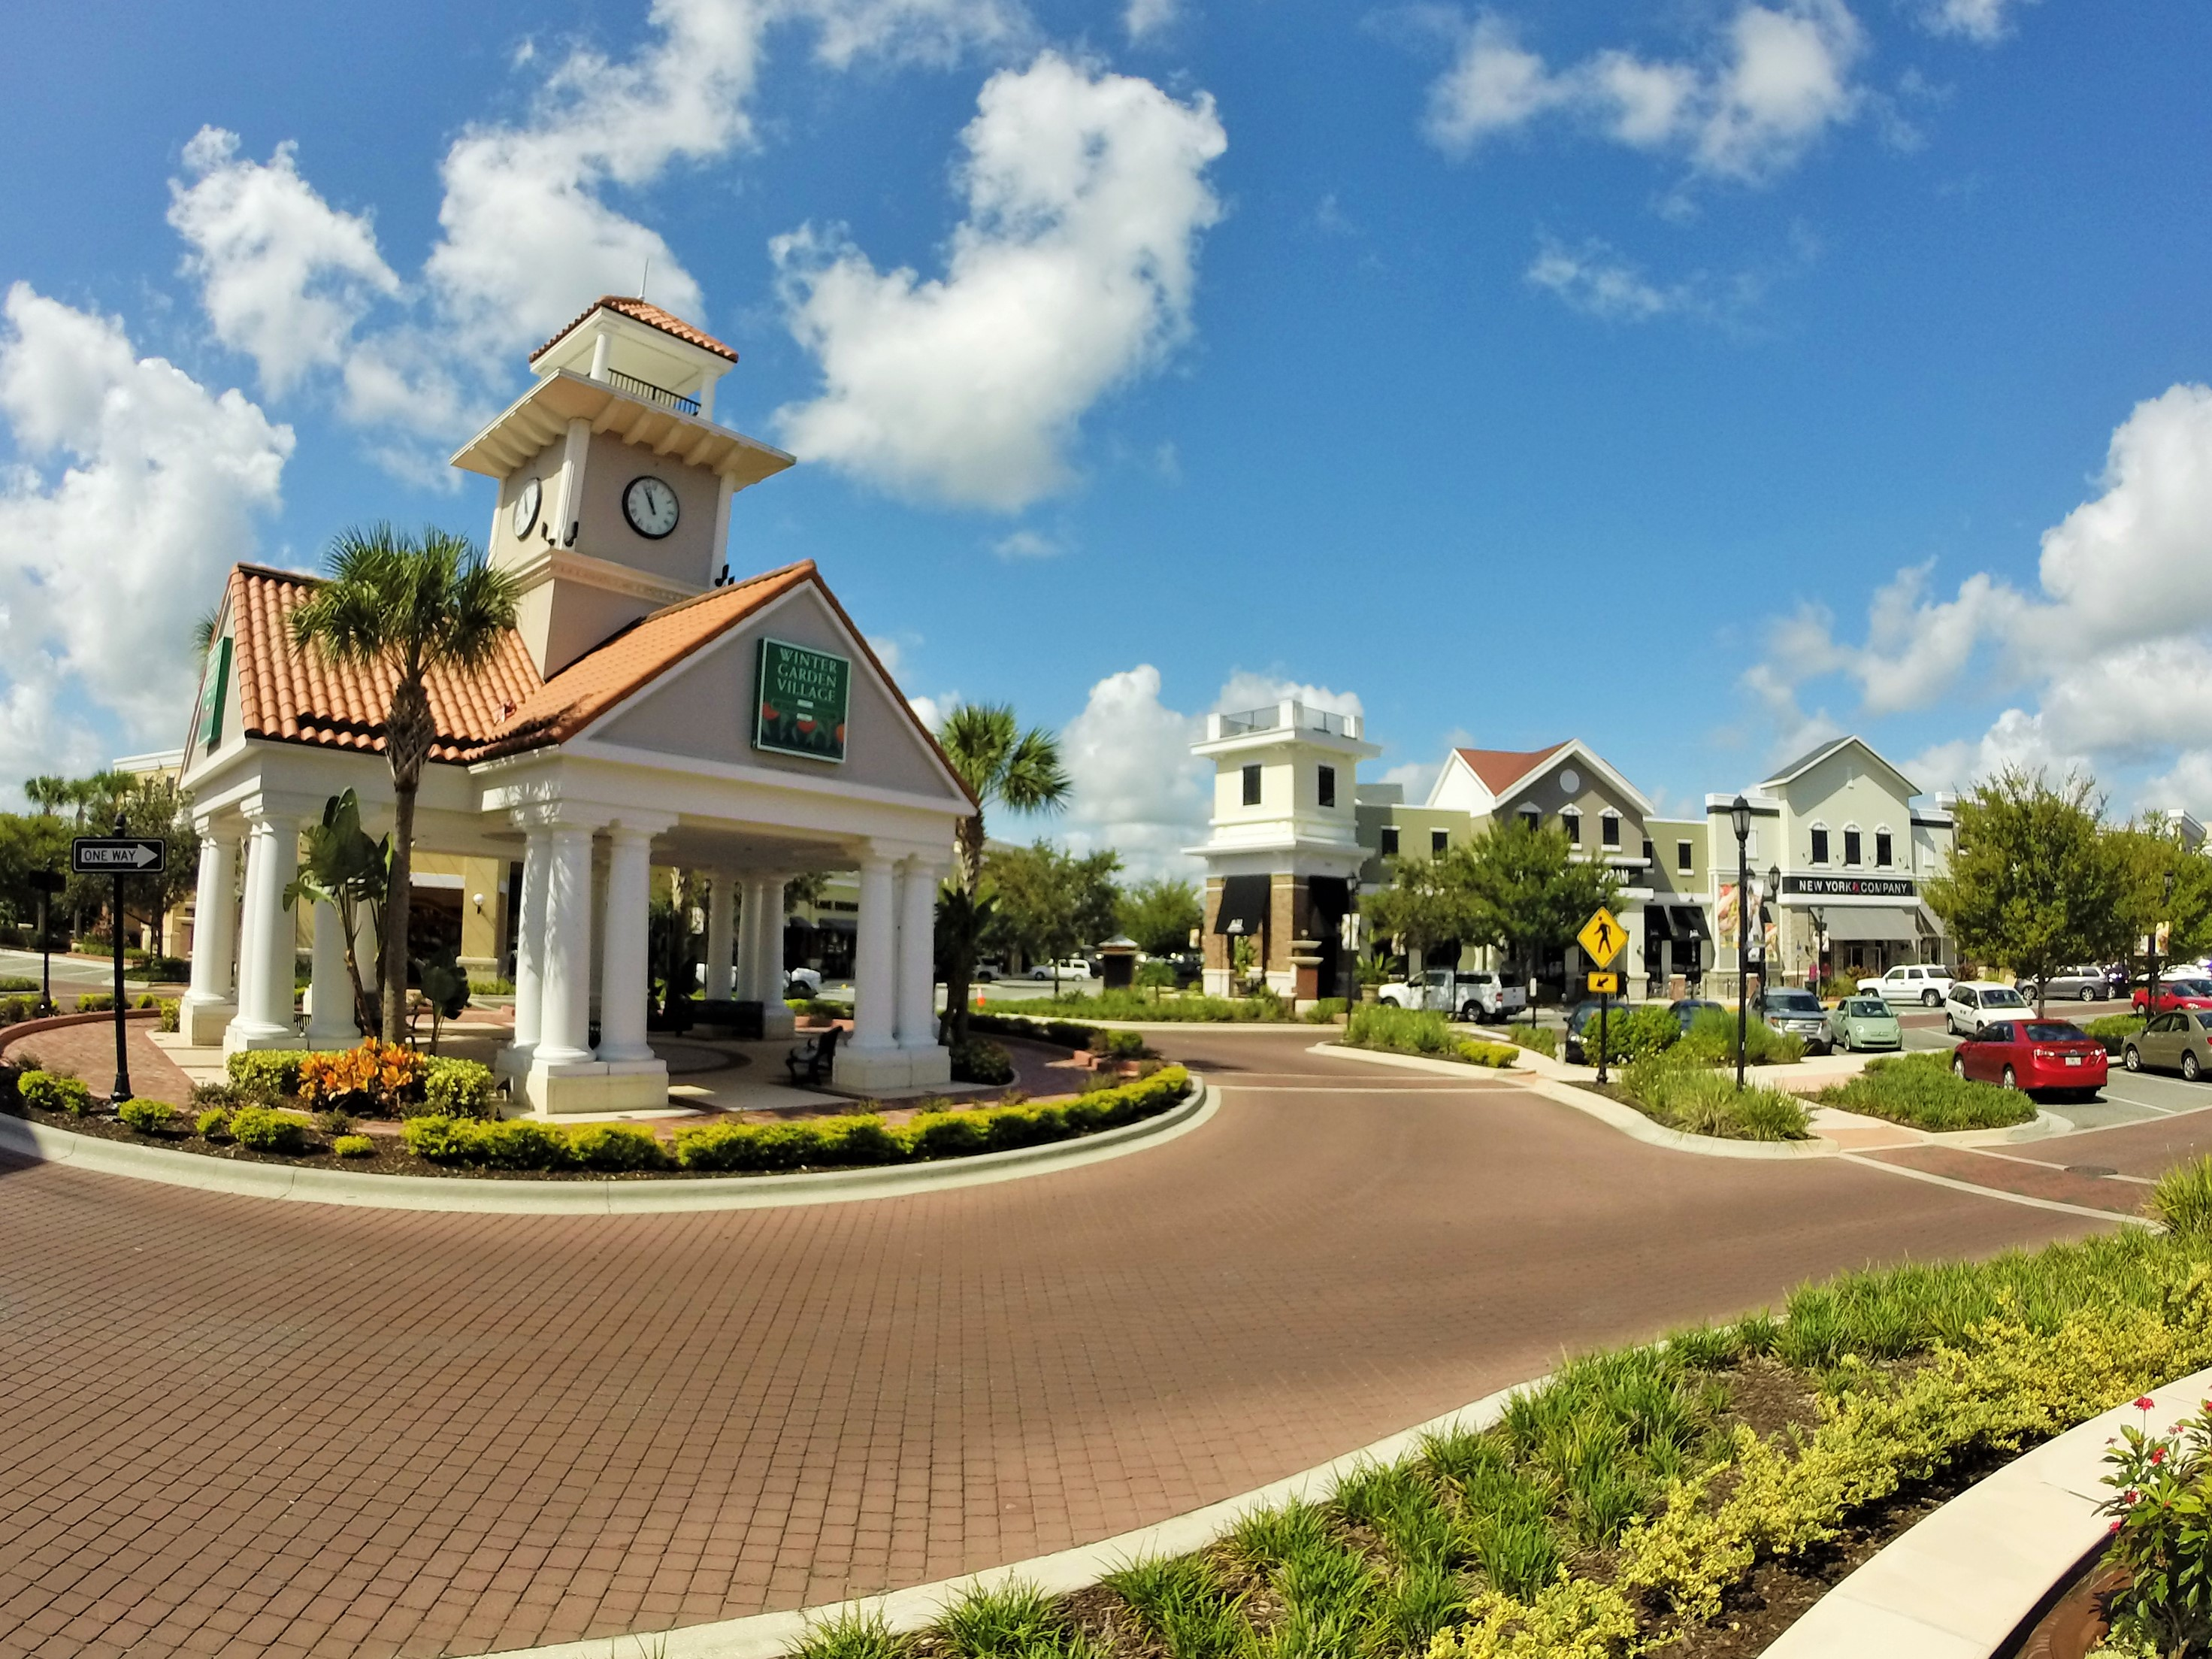 winter garden homes for sale winter garden florida real estate - New Homes Winter Garden Fl